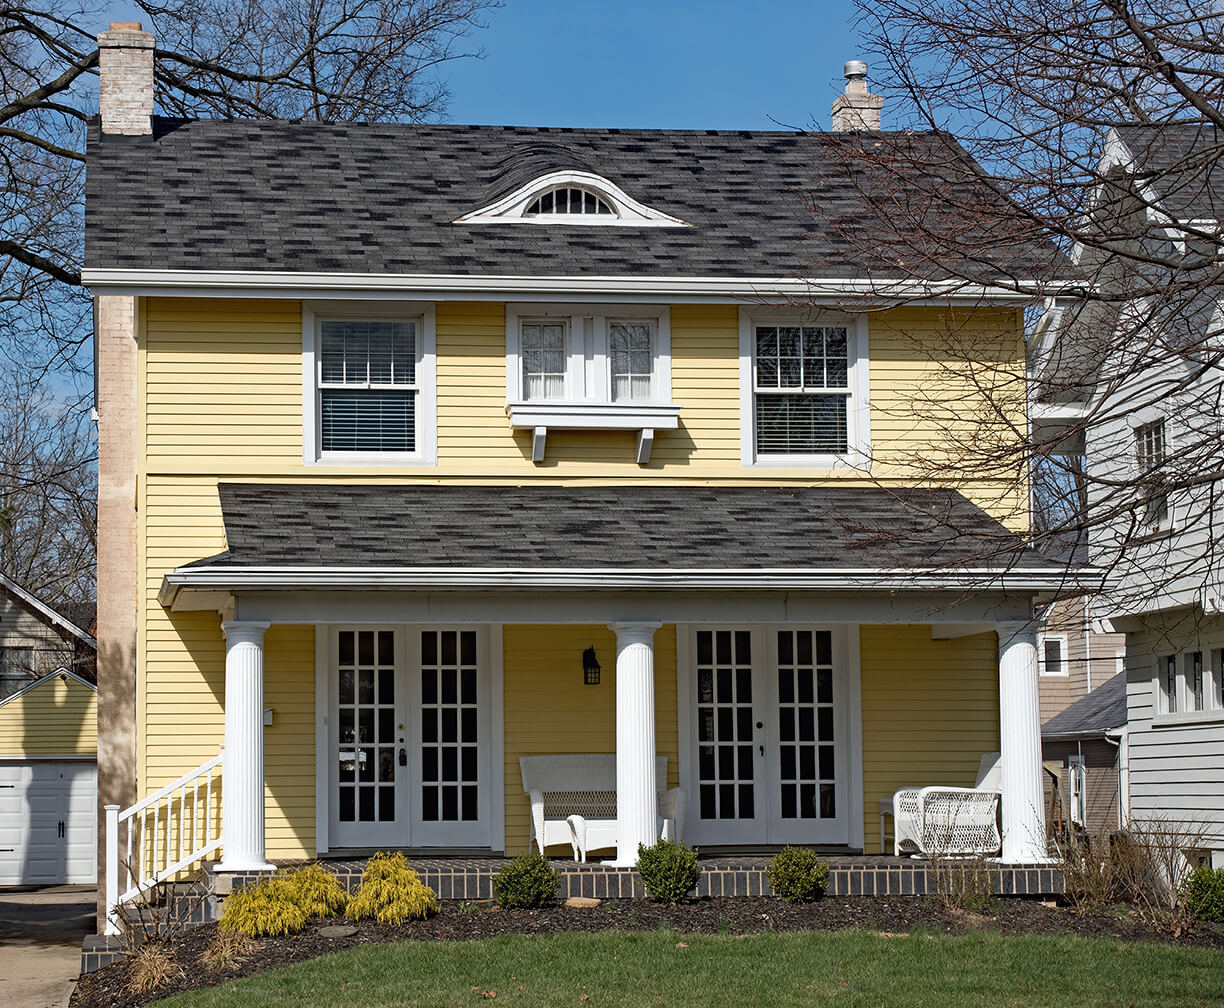 A new house with yellow siding, white trim, and a charcoal shingle roof.